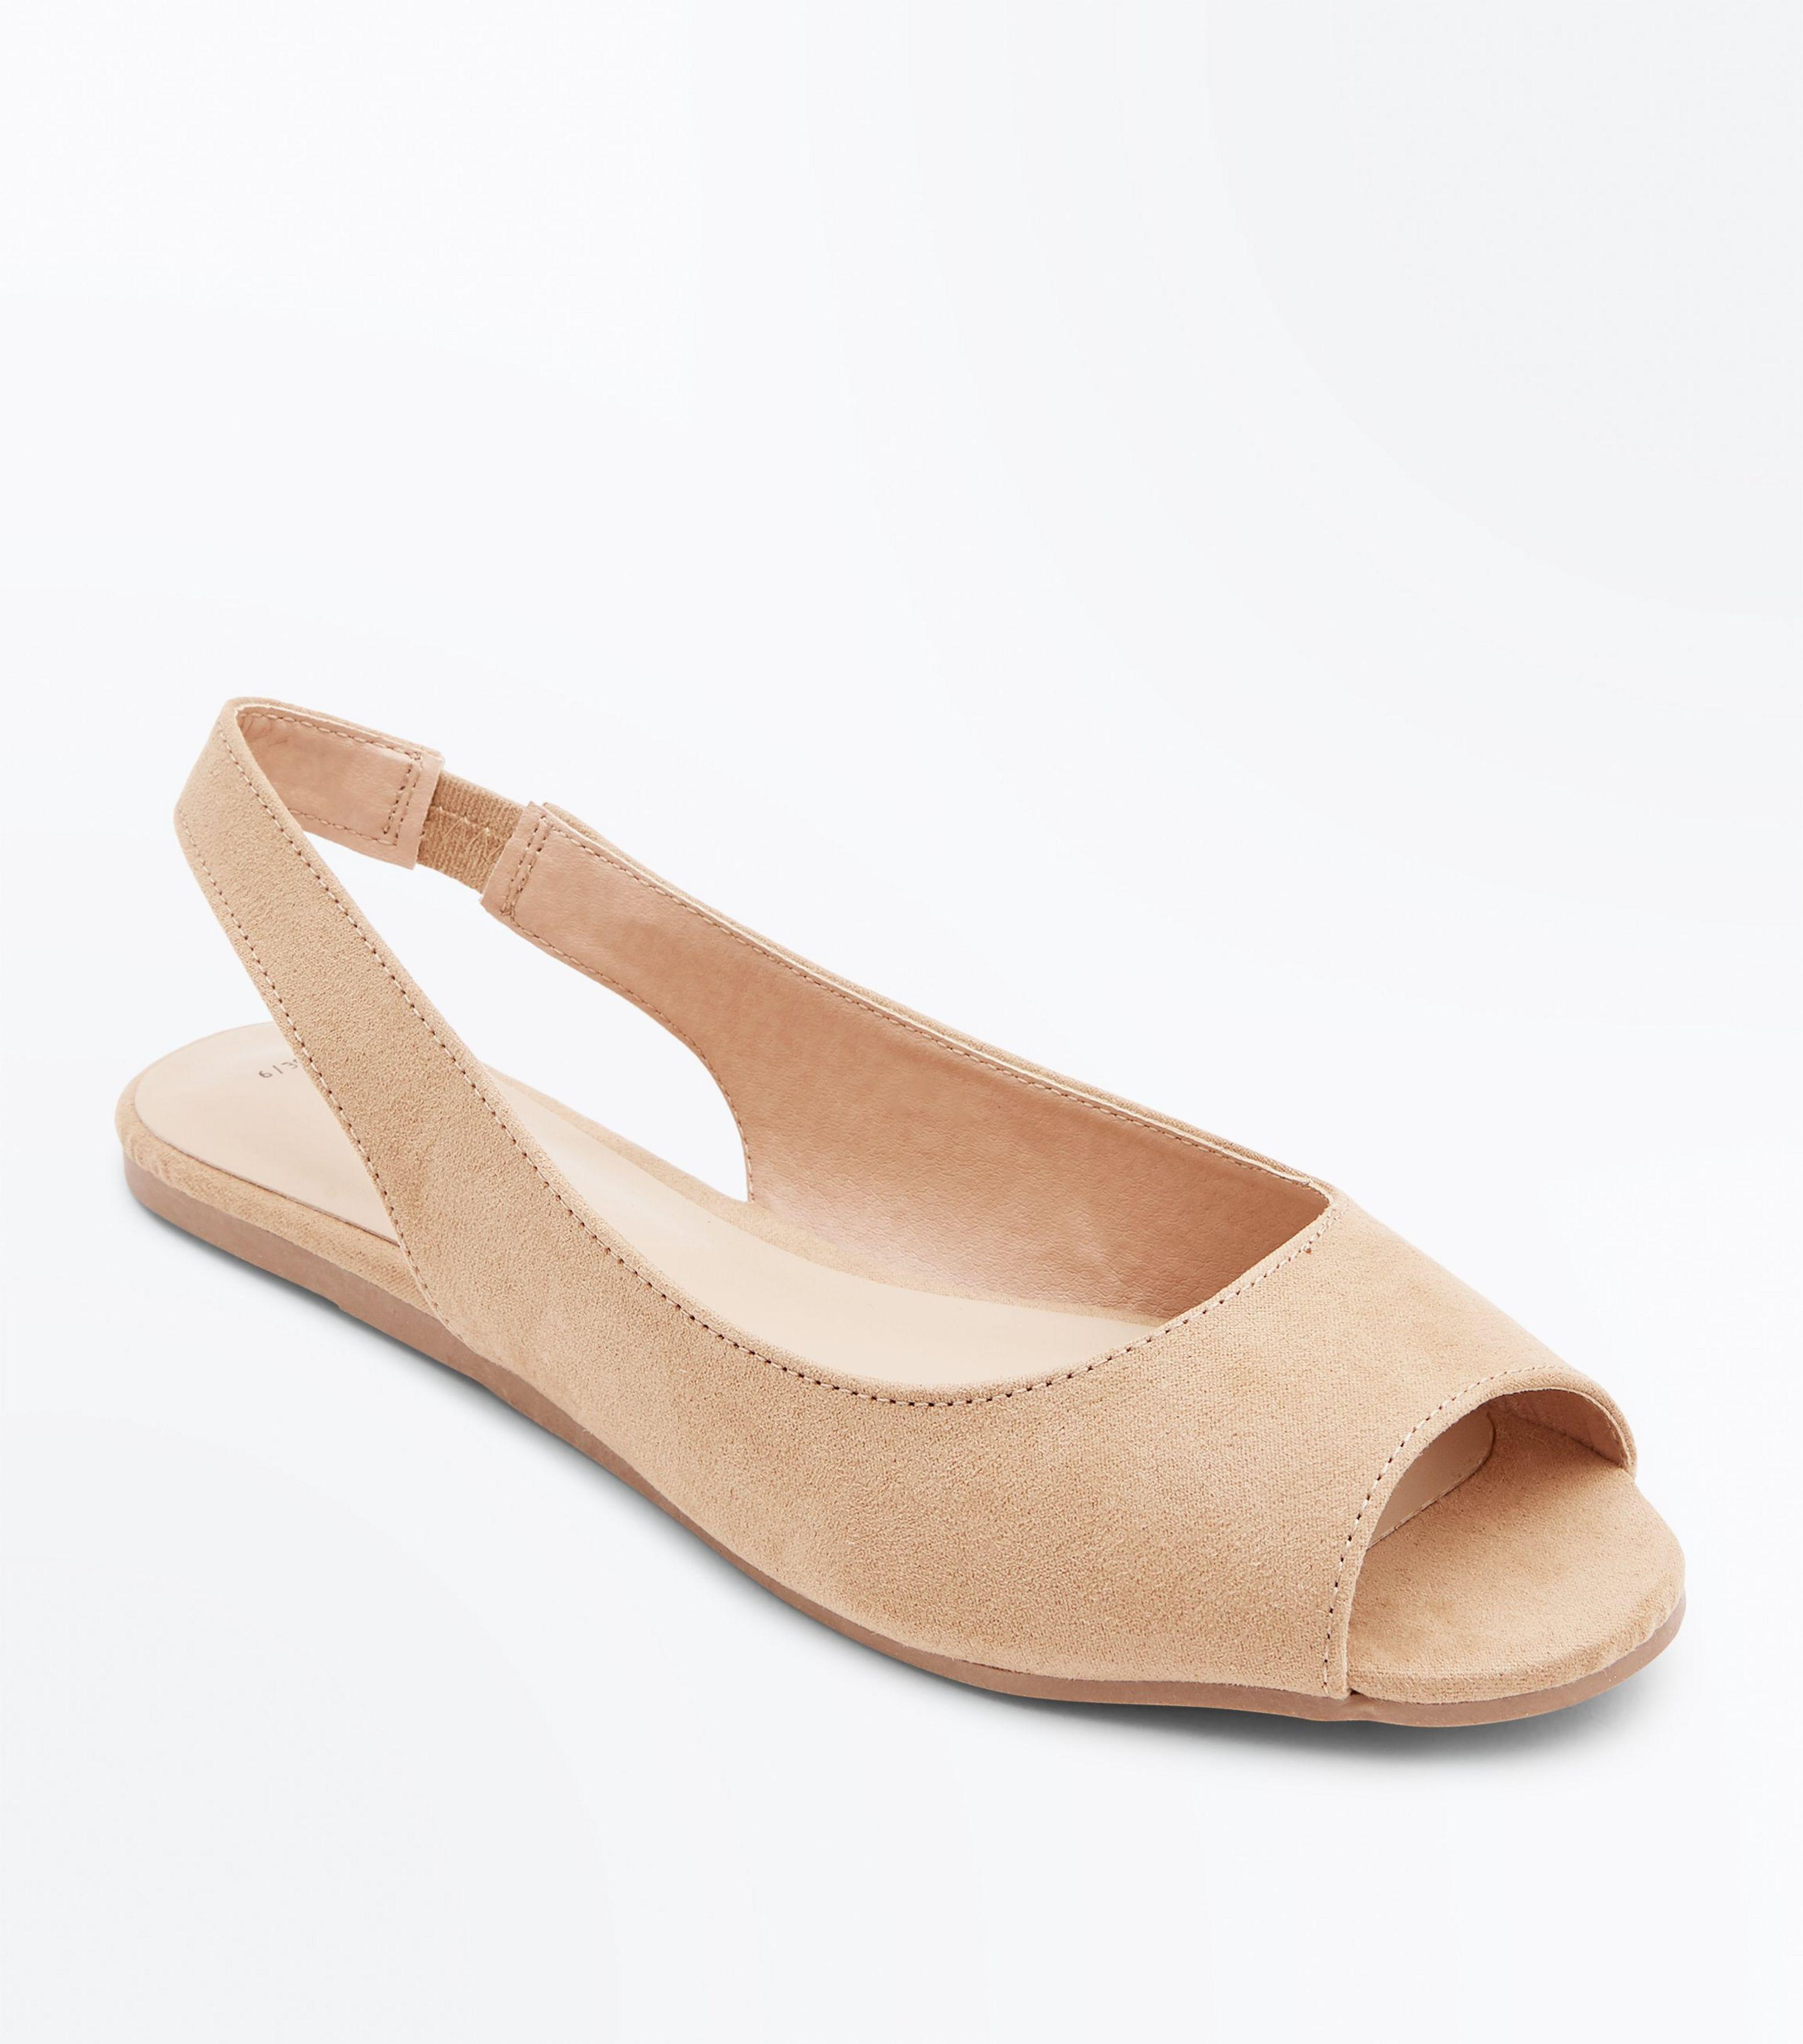 New Look Tan Suedette Peep Toe Flat Slingbacks - Lyst